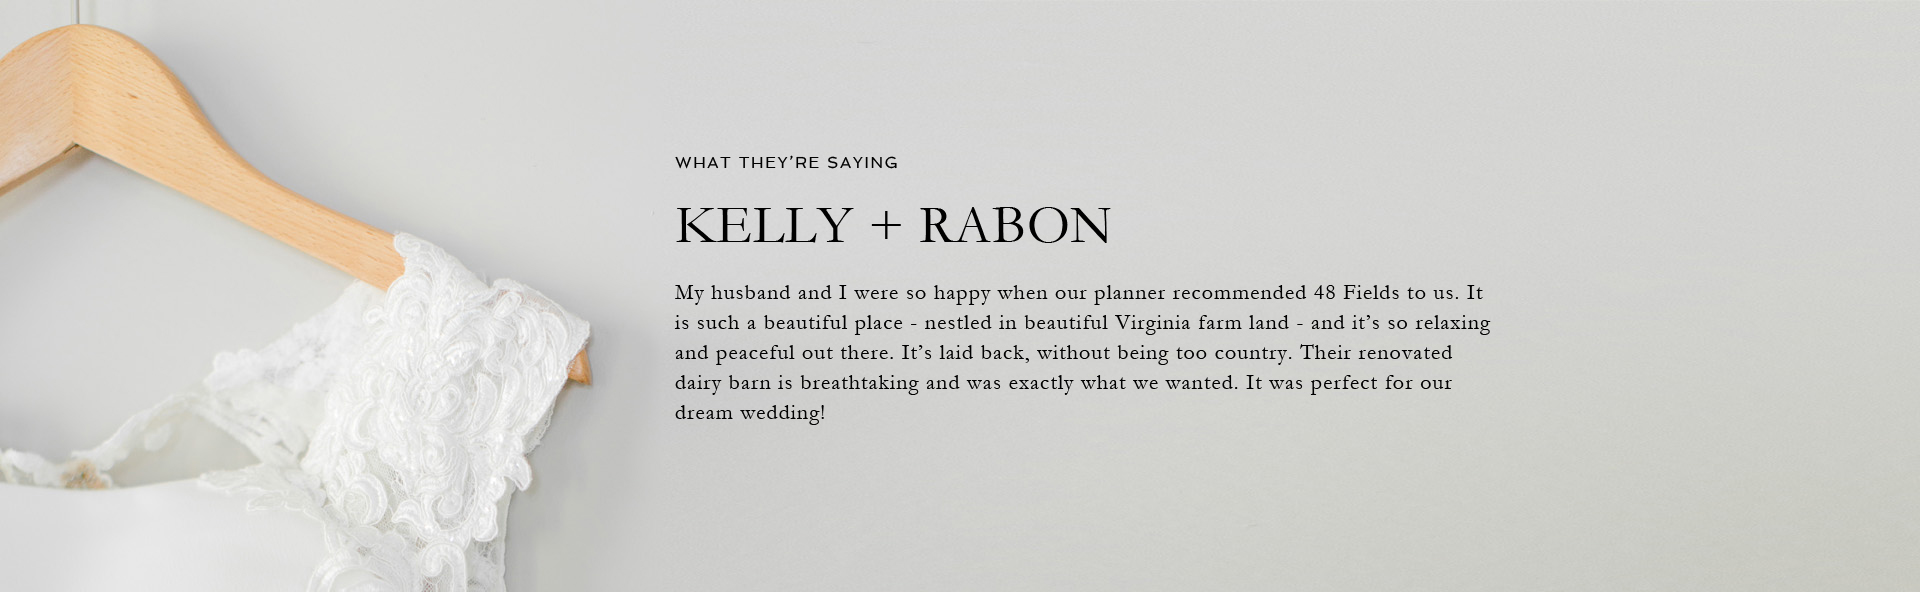 real-wedding-reviews-kelly-rabon